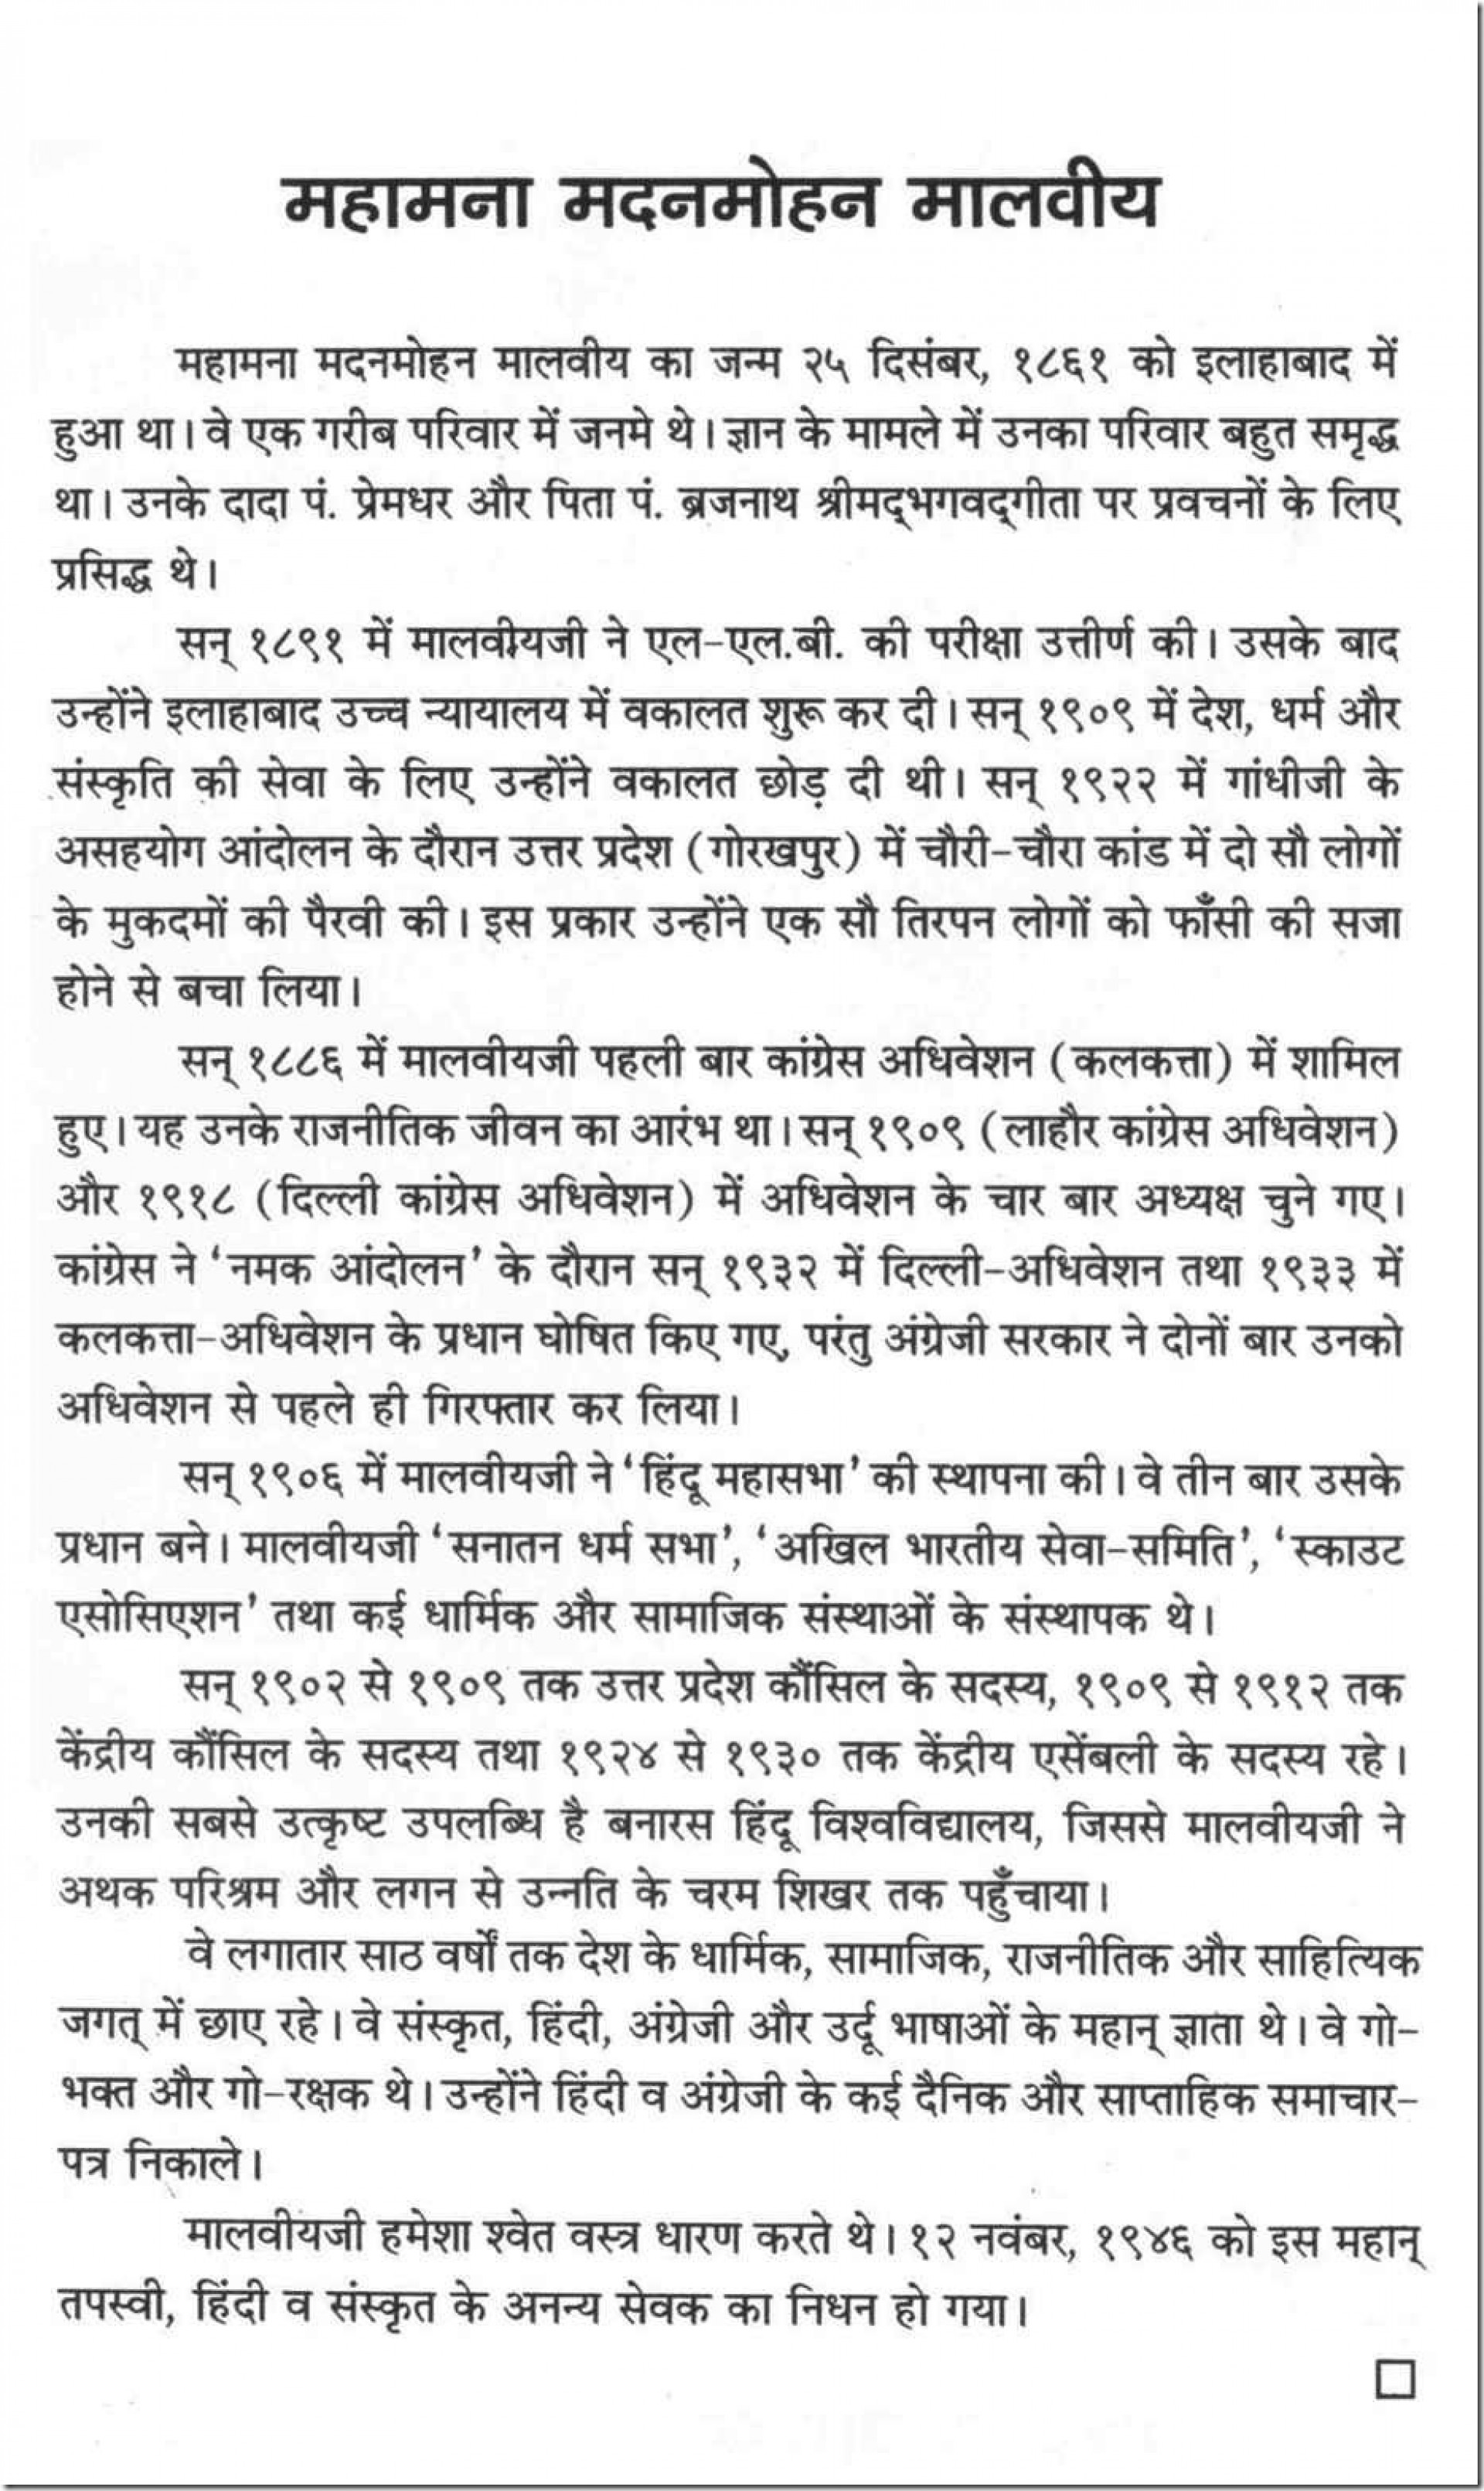 002 10072 Thumb Essay Example Lokmanya Incredible Tilak Aste Tar In Marathi On Bal Gangadhar Hindi Pdf 1920